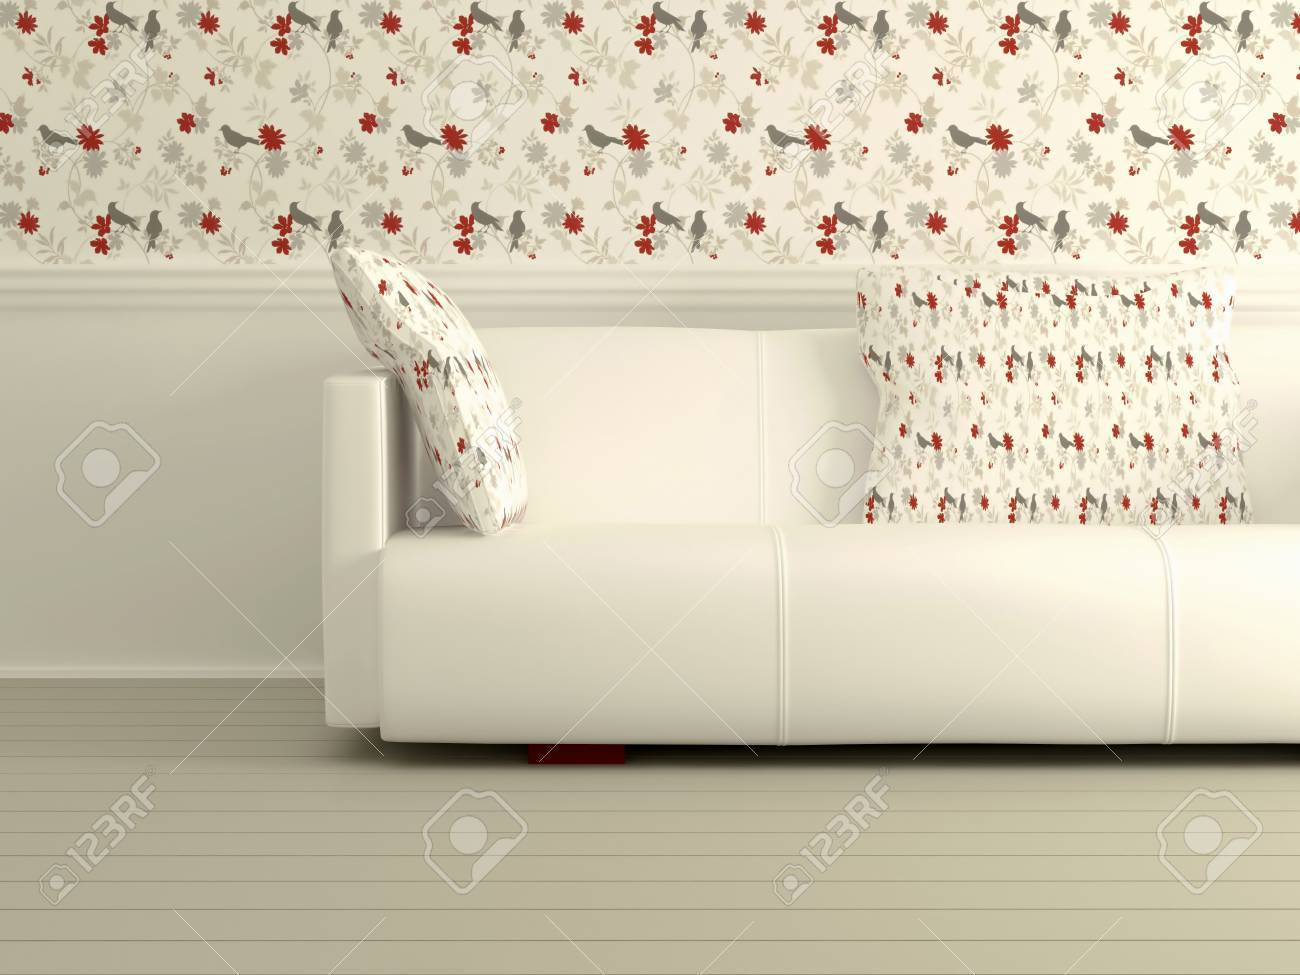 Part of the modern interior with white sofa, interesting floral wallpaper, 3D rendering Stock Photo - 15152171